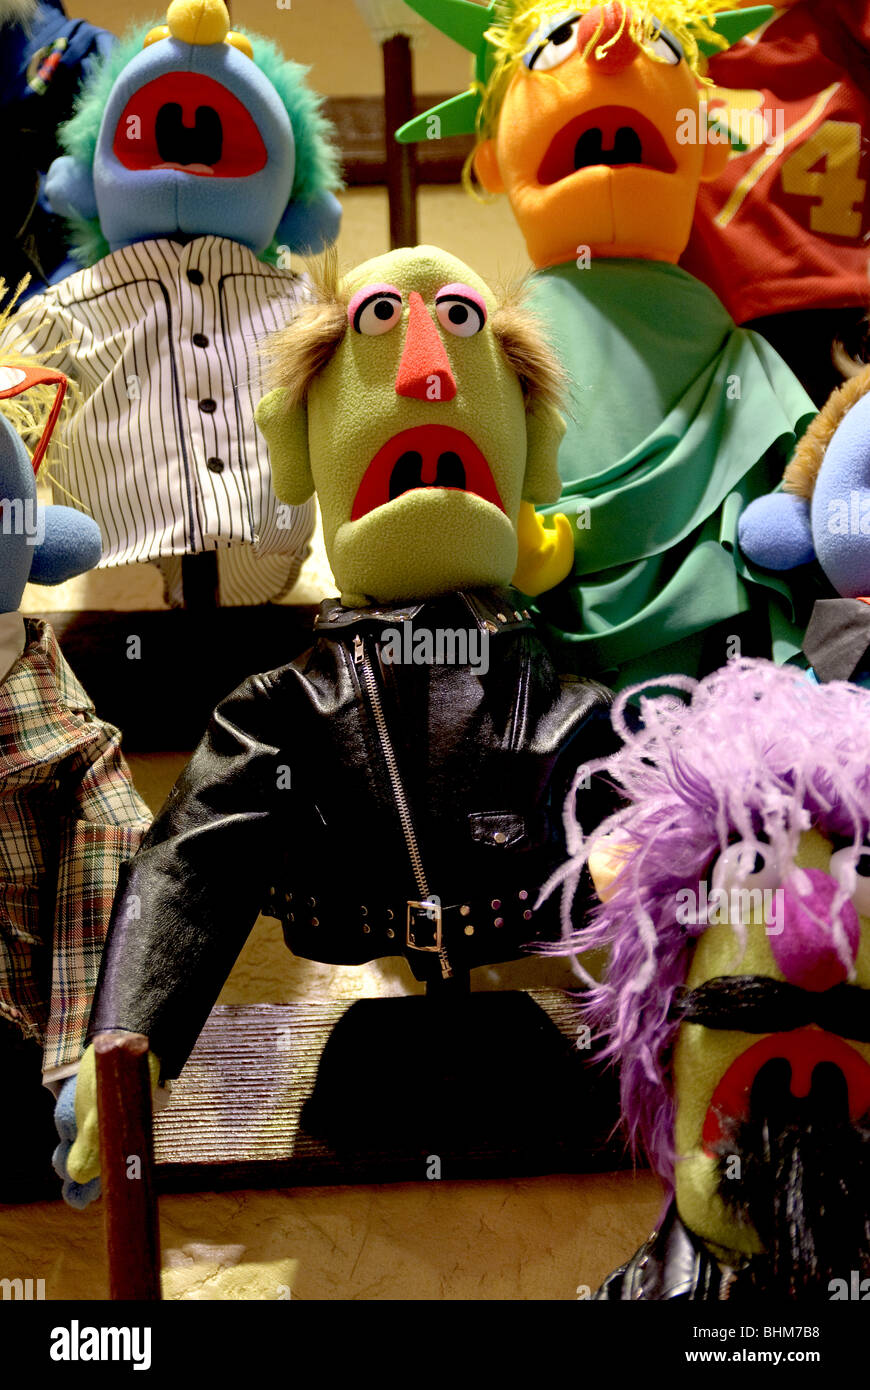 Build Your Own Muppet at the FAO Schwarz Toy Whatnot Workshop, New York City - Stock Image